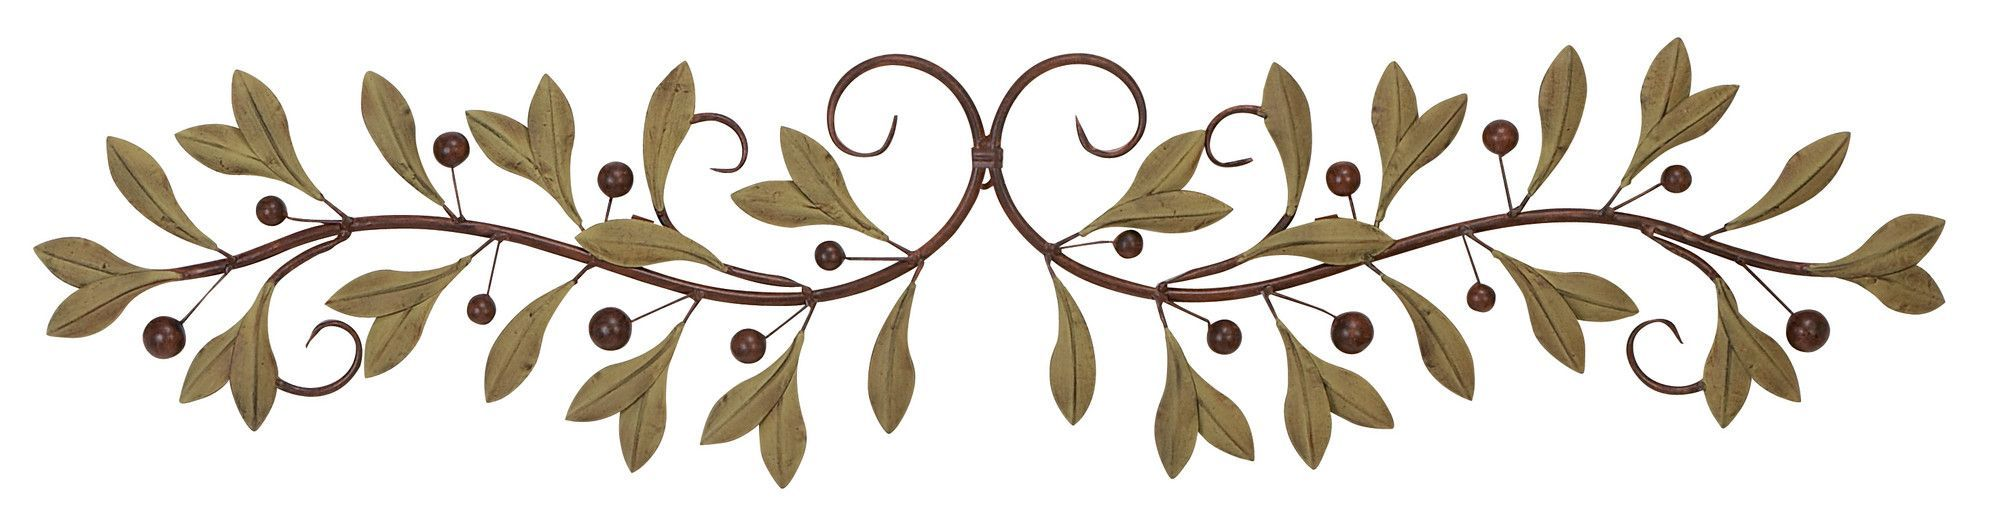 Budding Olive Branch Wall Décor Products Decor